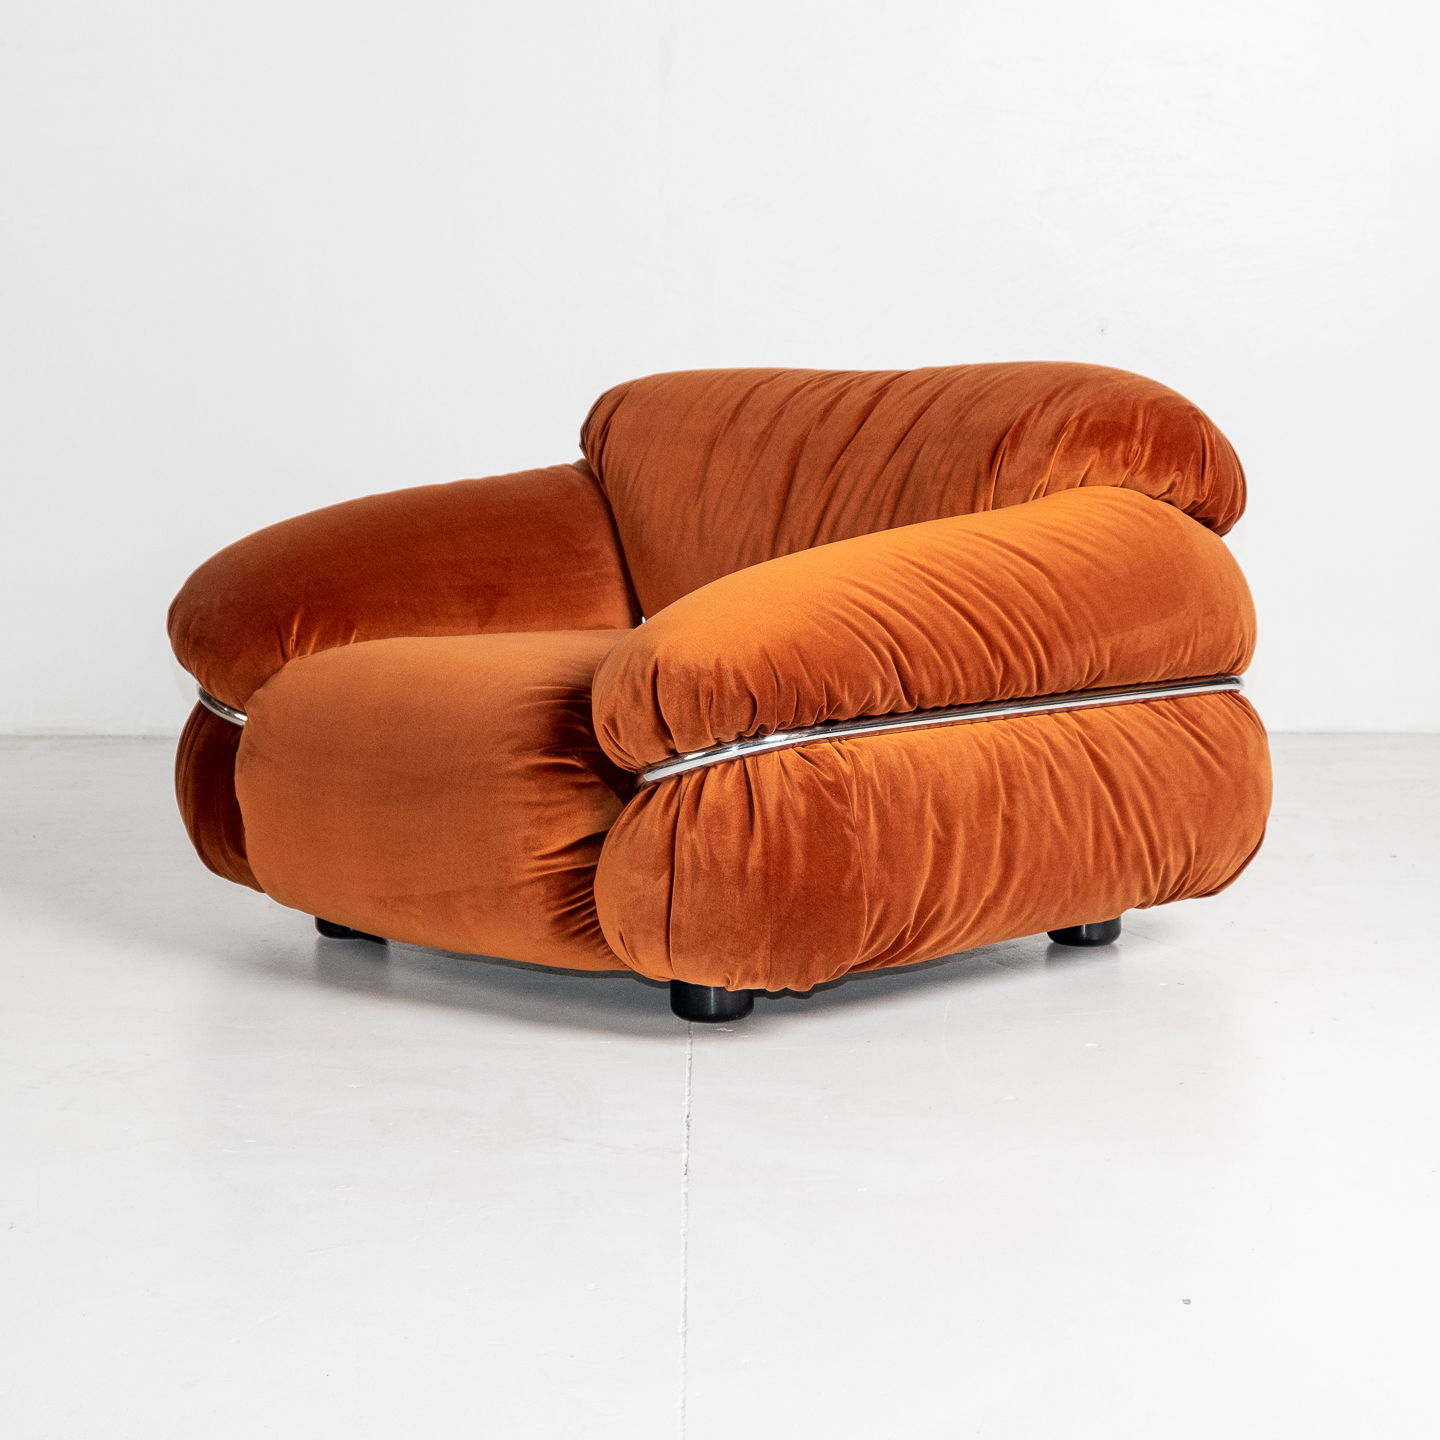 Model 595 Sesann Armchair By Gianfranco Frattini For Cassina, 1970s, Italy 13